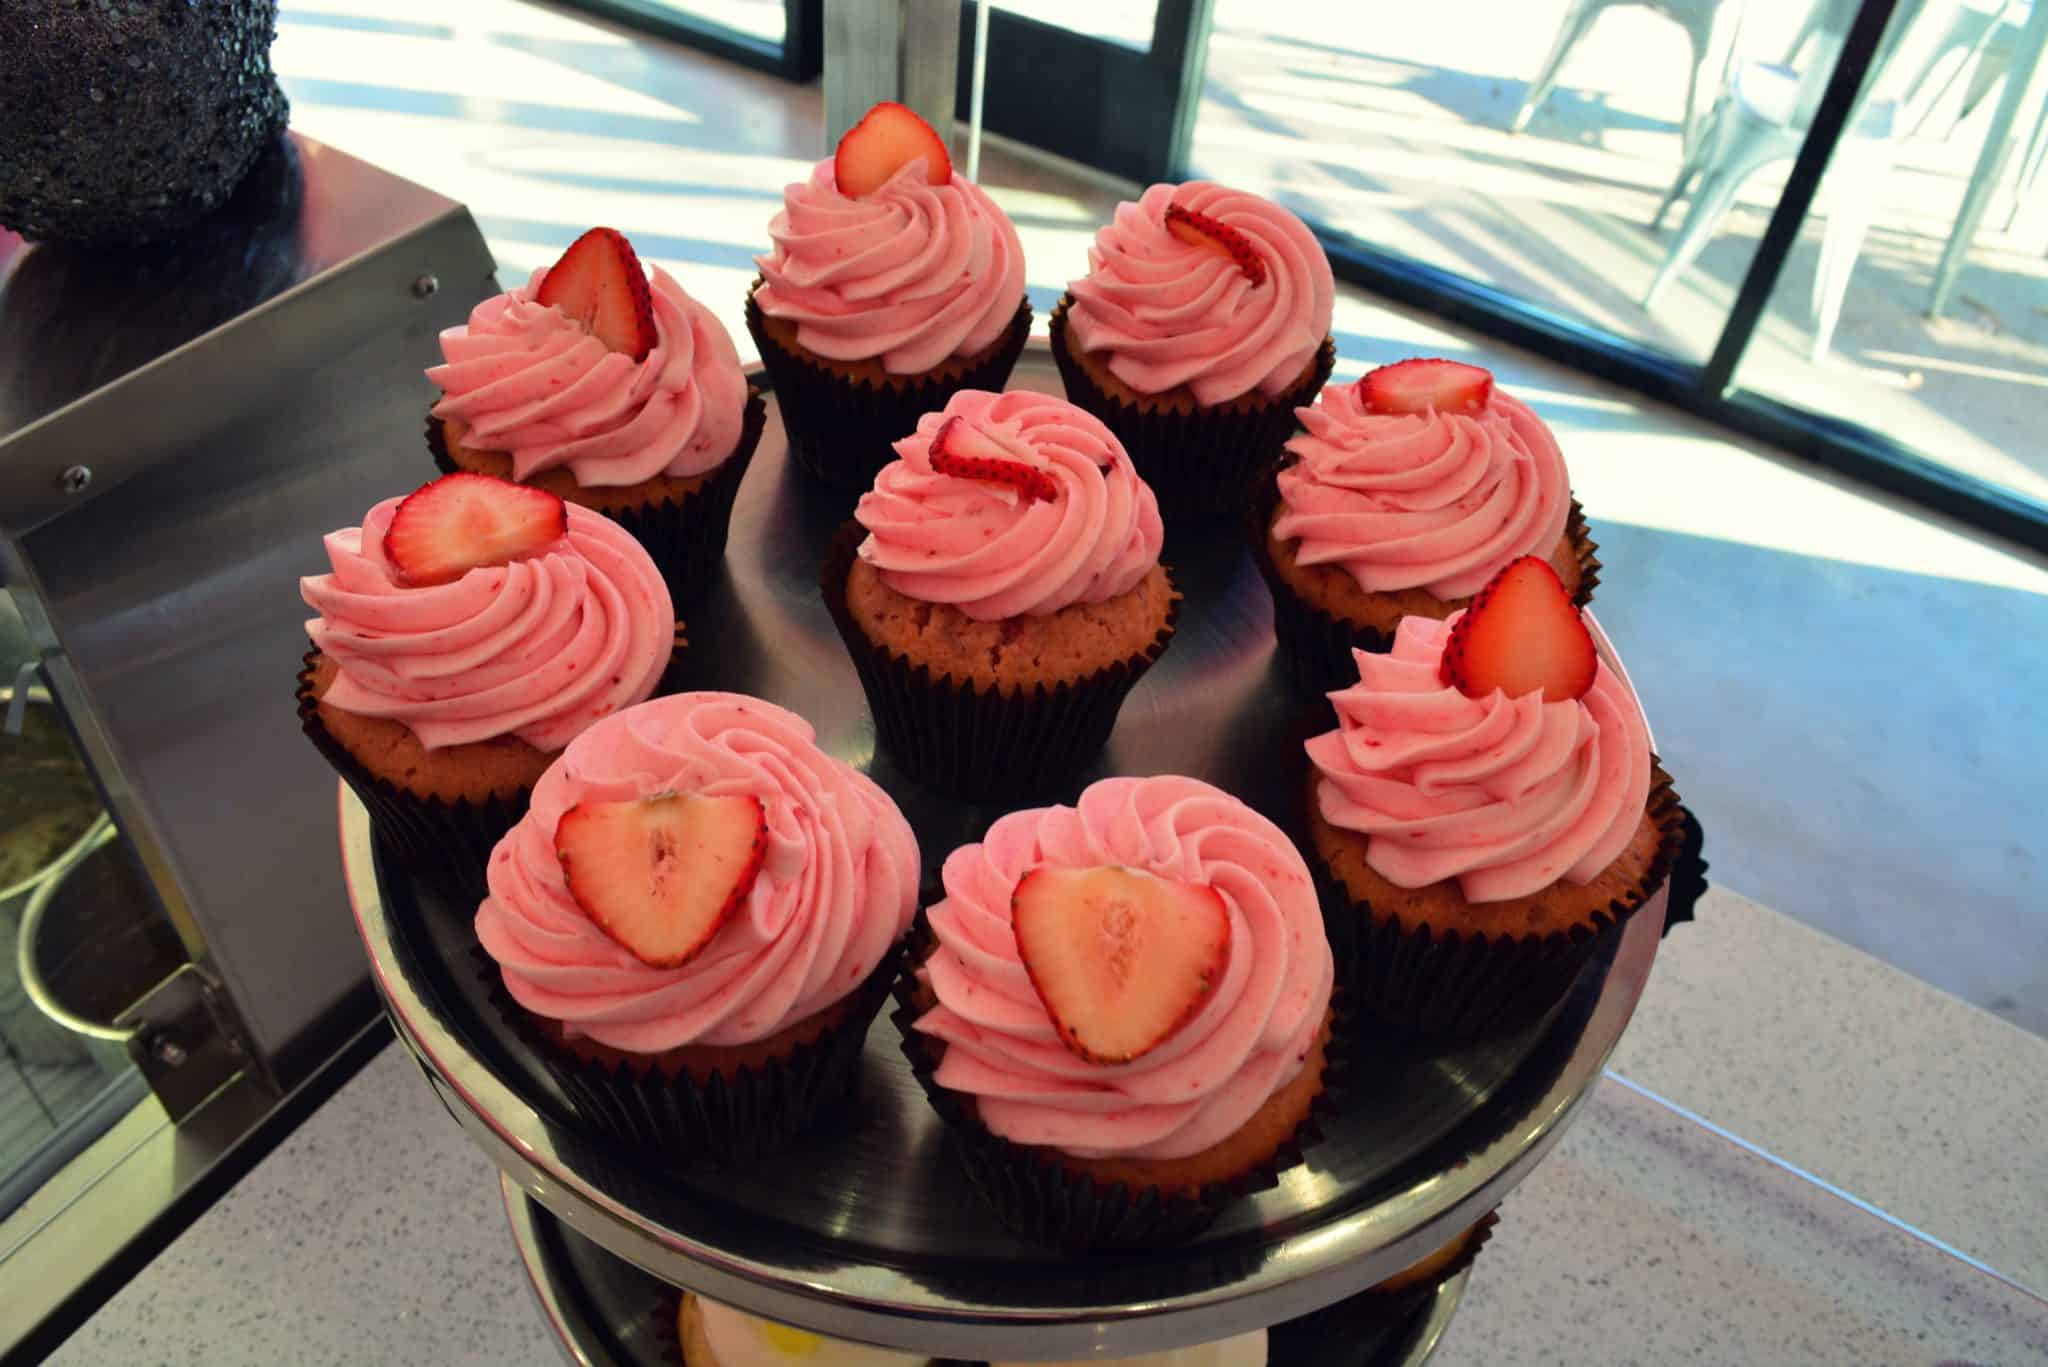 c14808d6d Sweet Shops & More Popping Up in Pearland - Pearland Texas ...